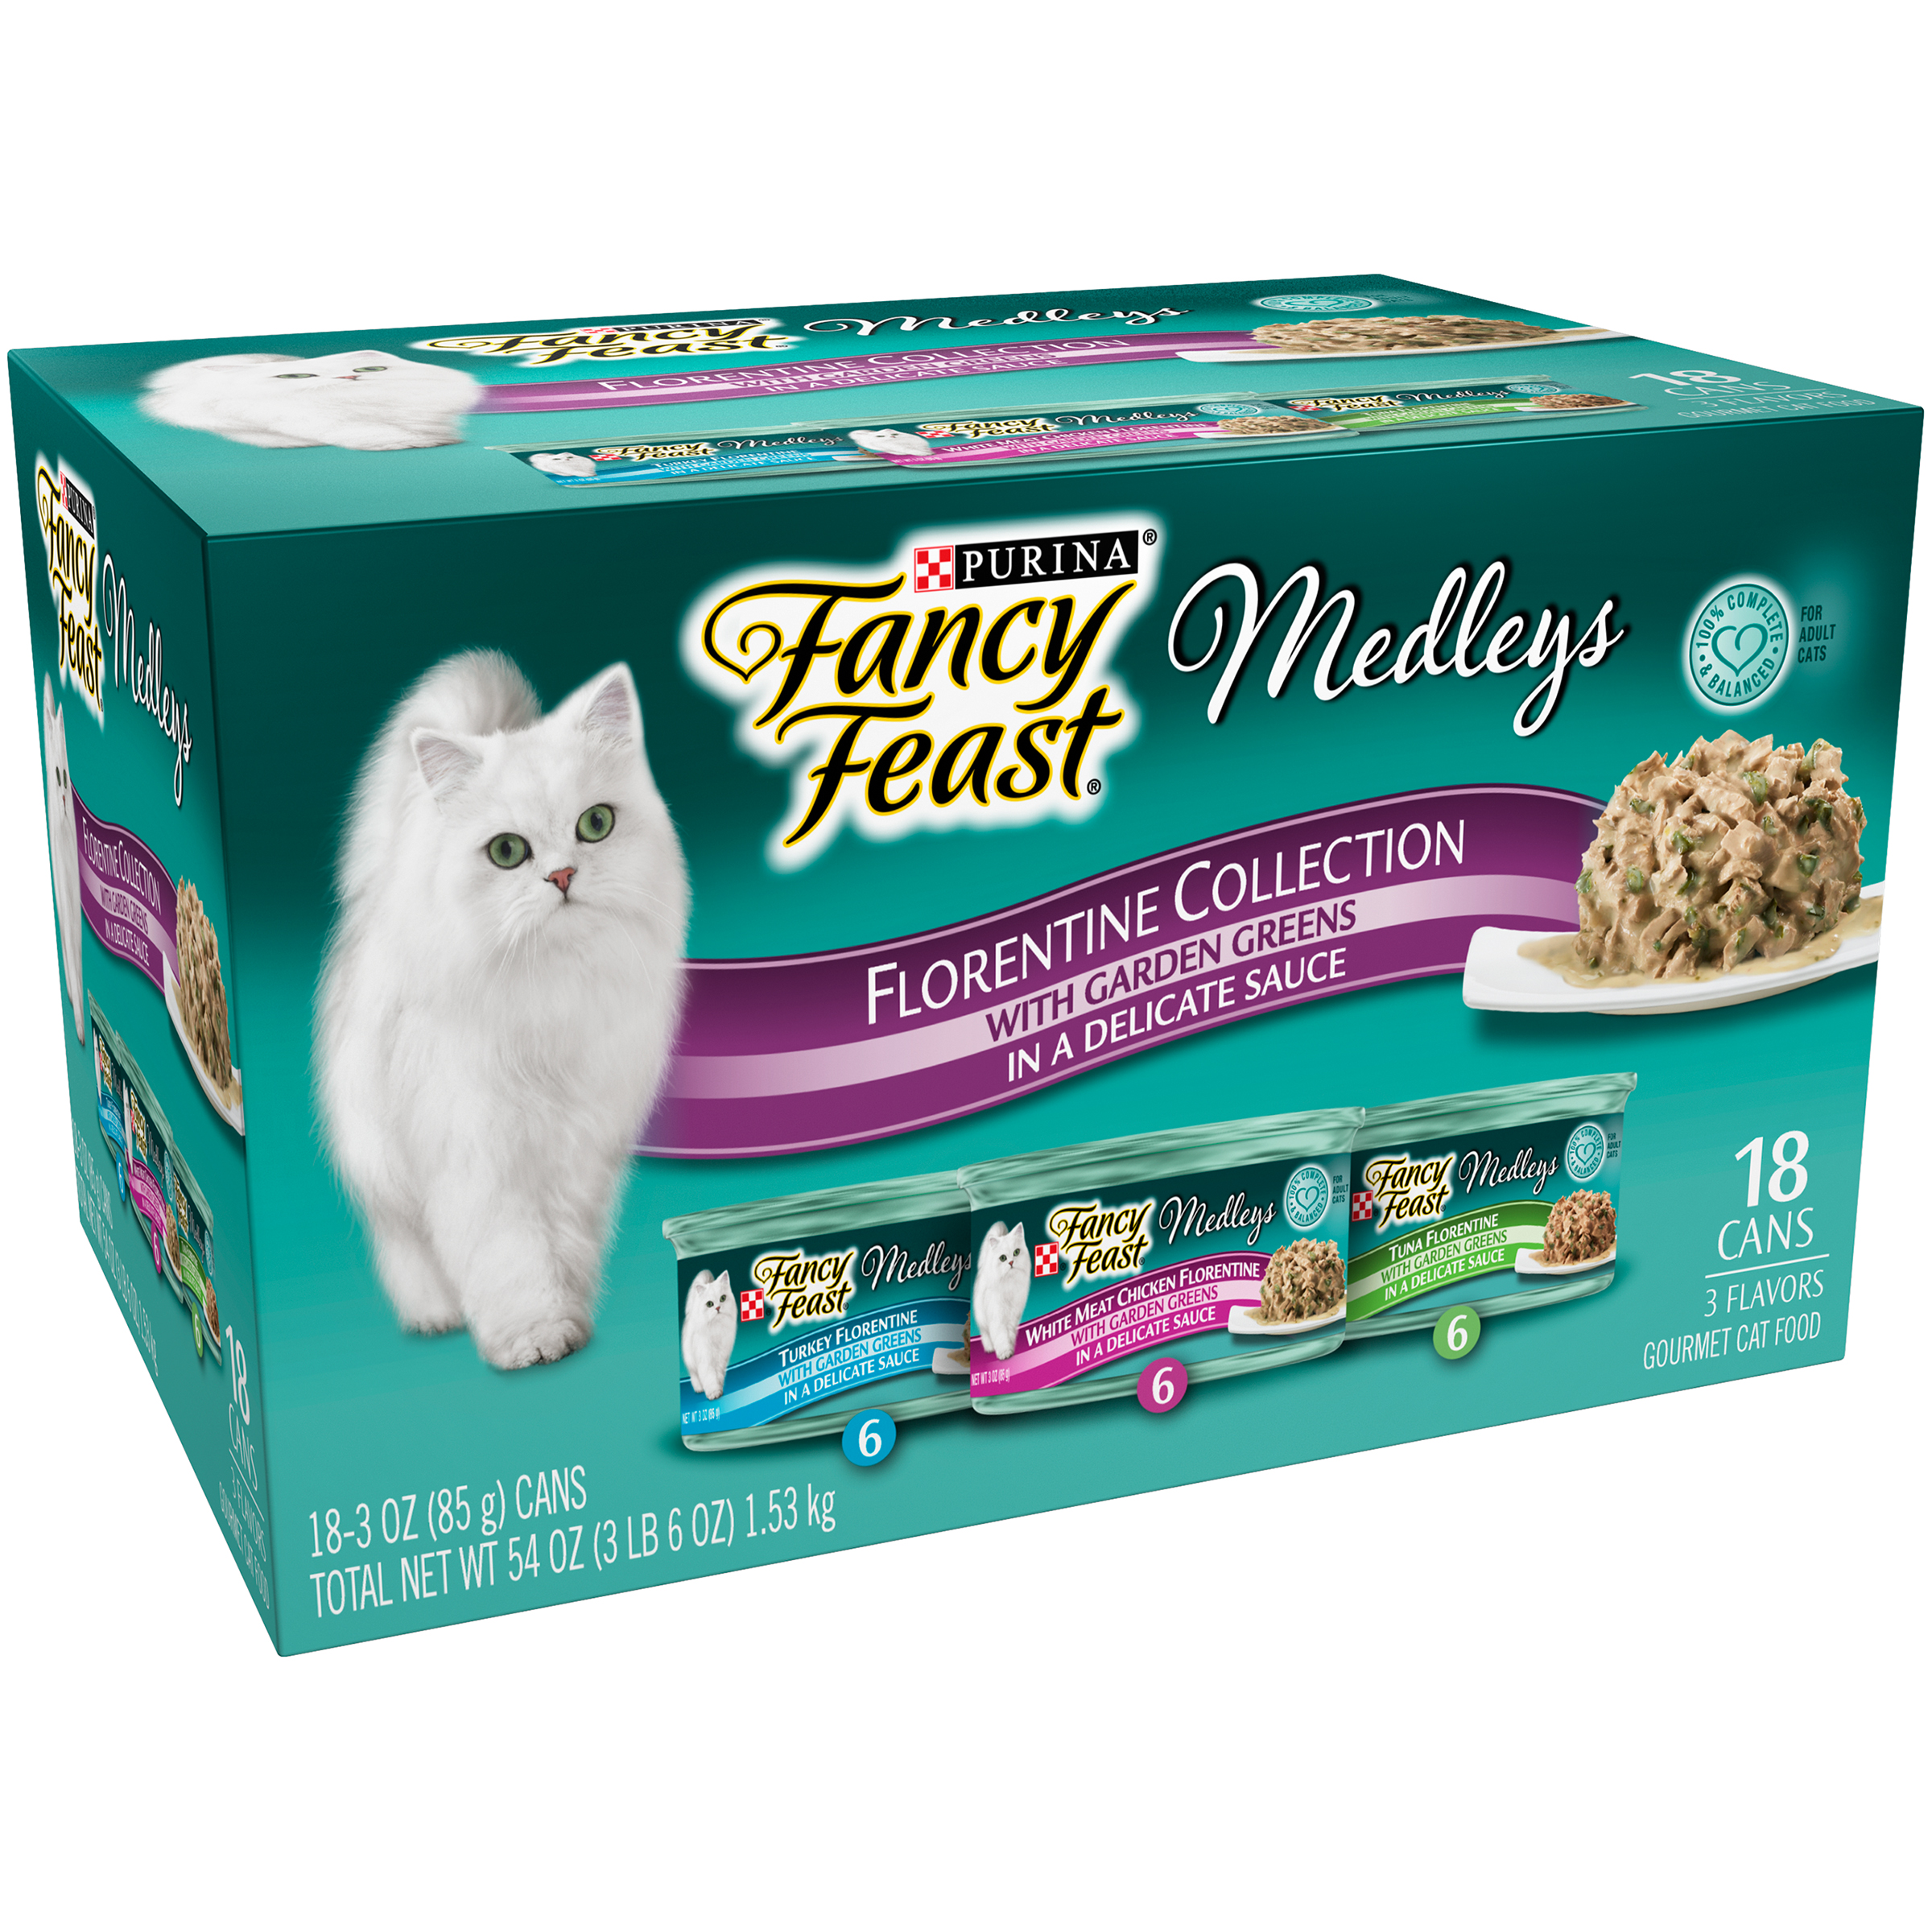 Purina Fancy Feast Medleys Florentine Collection Cat Food 18-3 oz. Cans